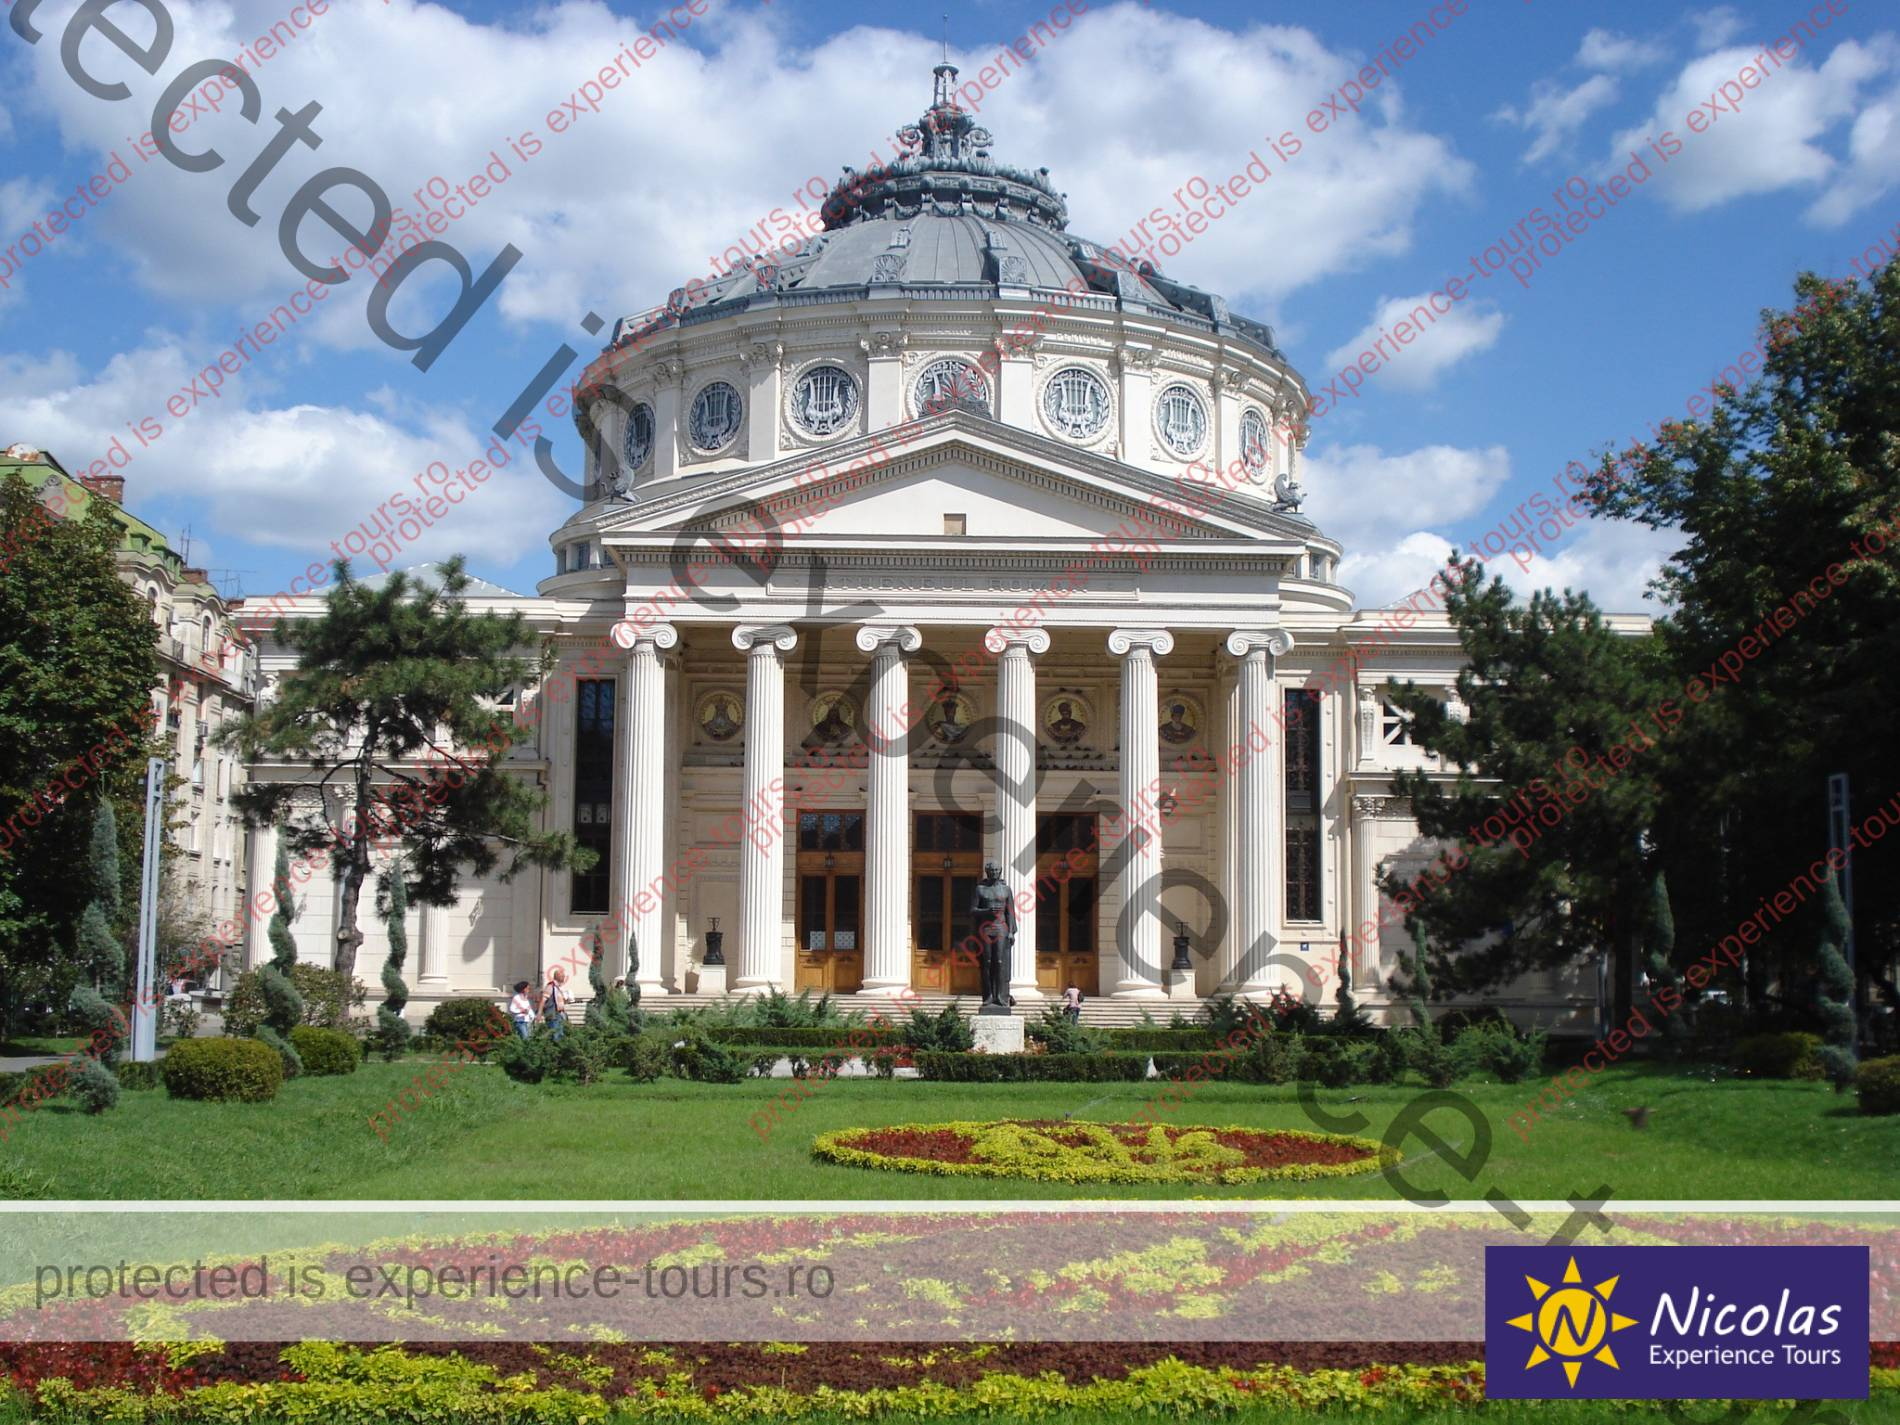 Bucharest City Tour Private guide